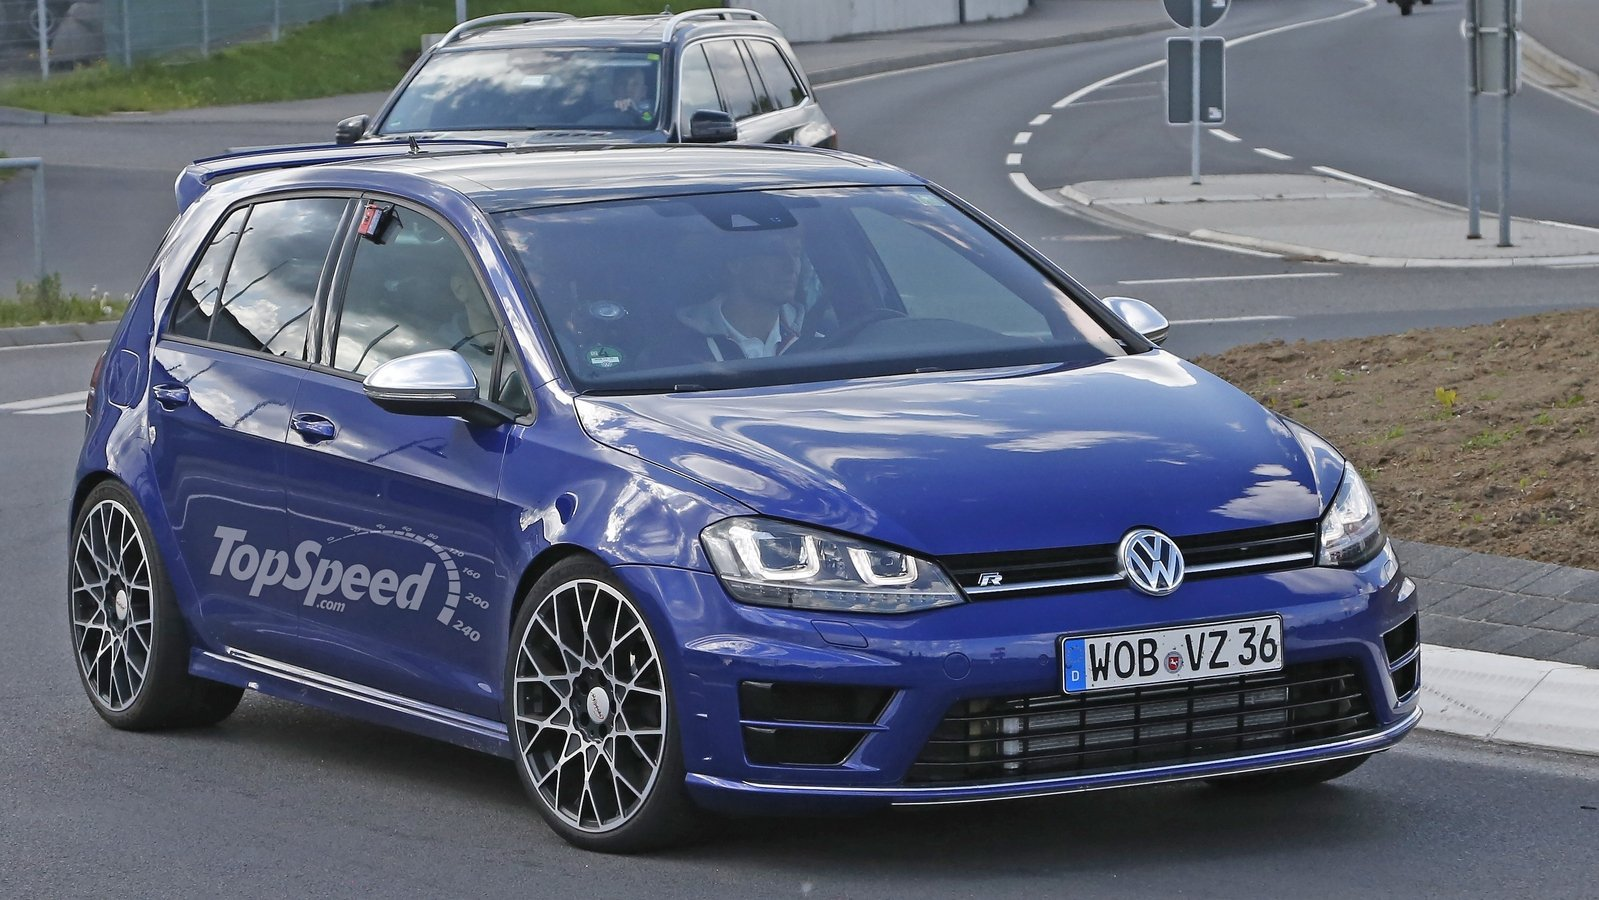 volkswagen golf r400 caught testing for the first time spy shots. Black Bedroom Furniture Sets. Home Design Ideas